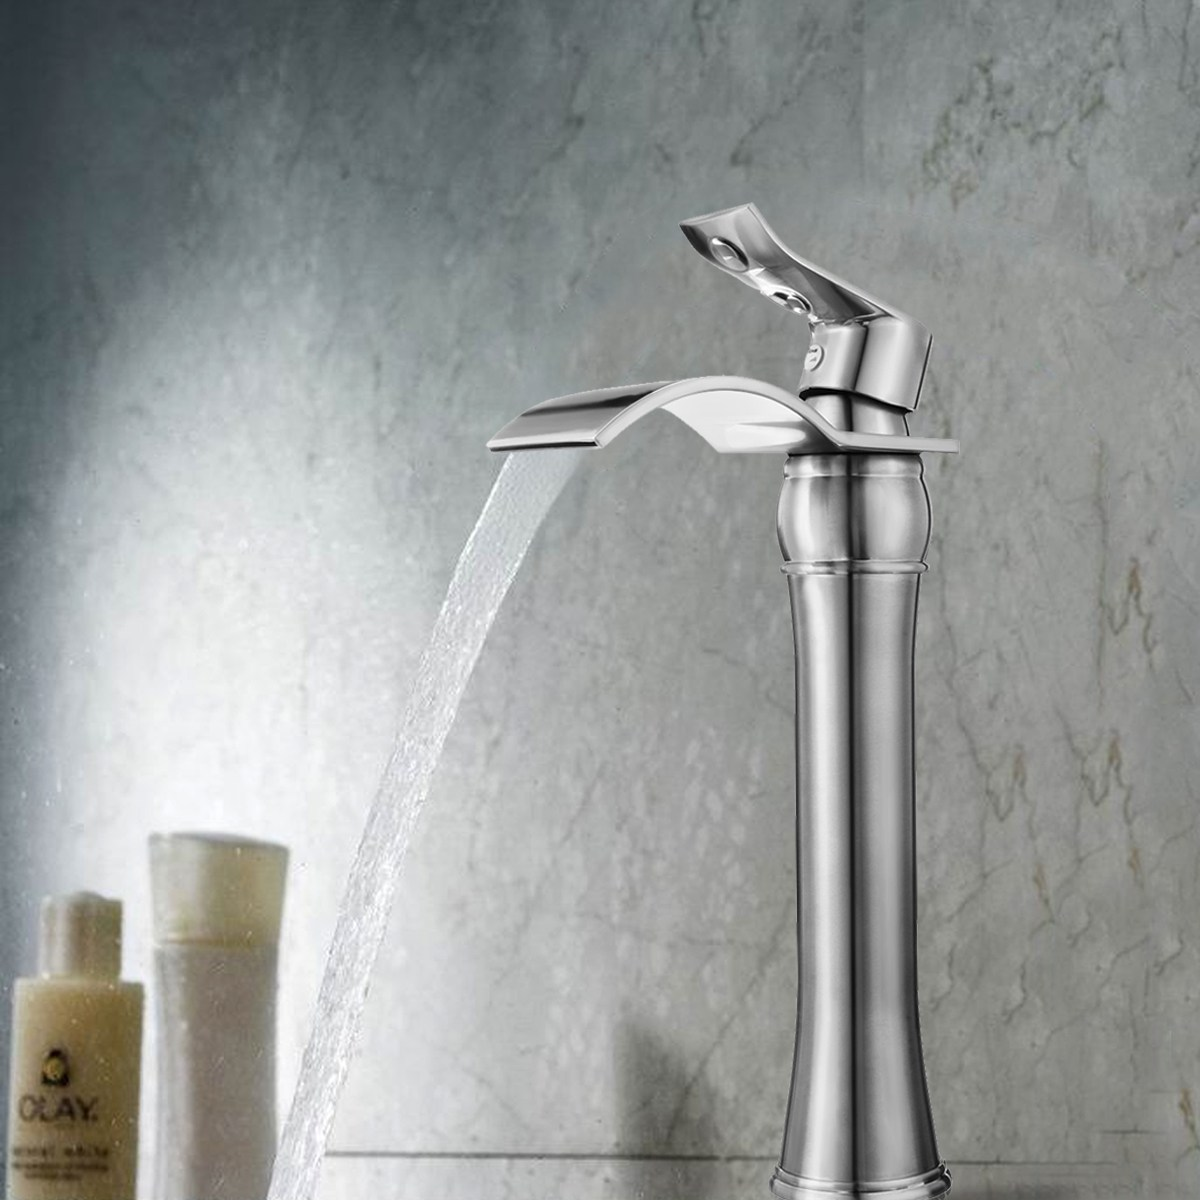 Modern Chrome Full Copper Brass Base High Basin Faucet Bathroom Waterfall Faucet Hot and Cold Mixer Tap Single Handle Sink Tap copper bathroom shelf basket soap dish copper storage holder silver